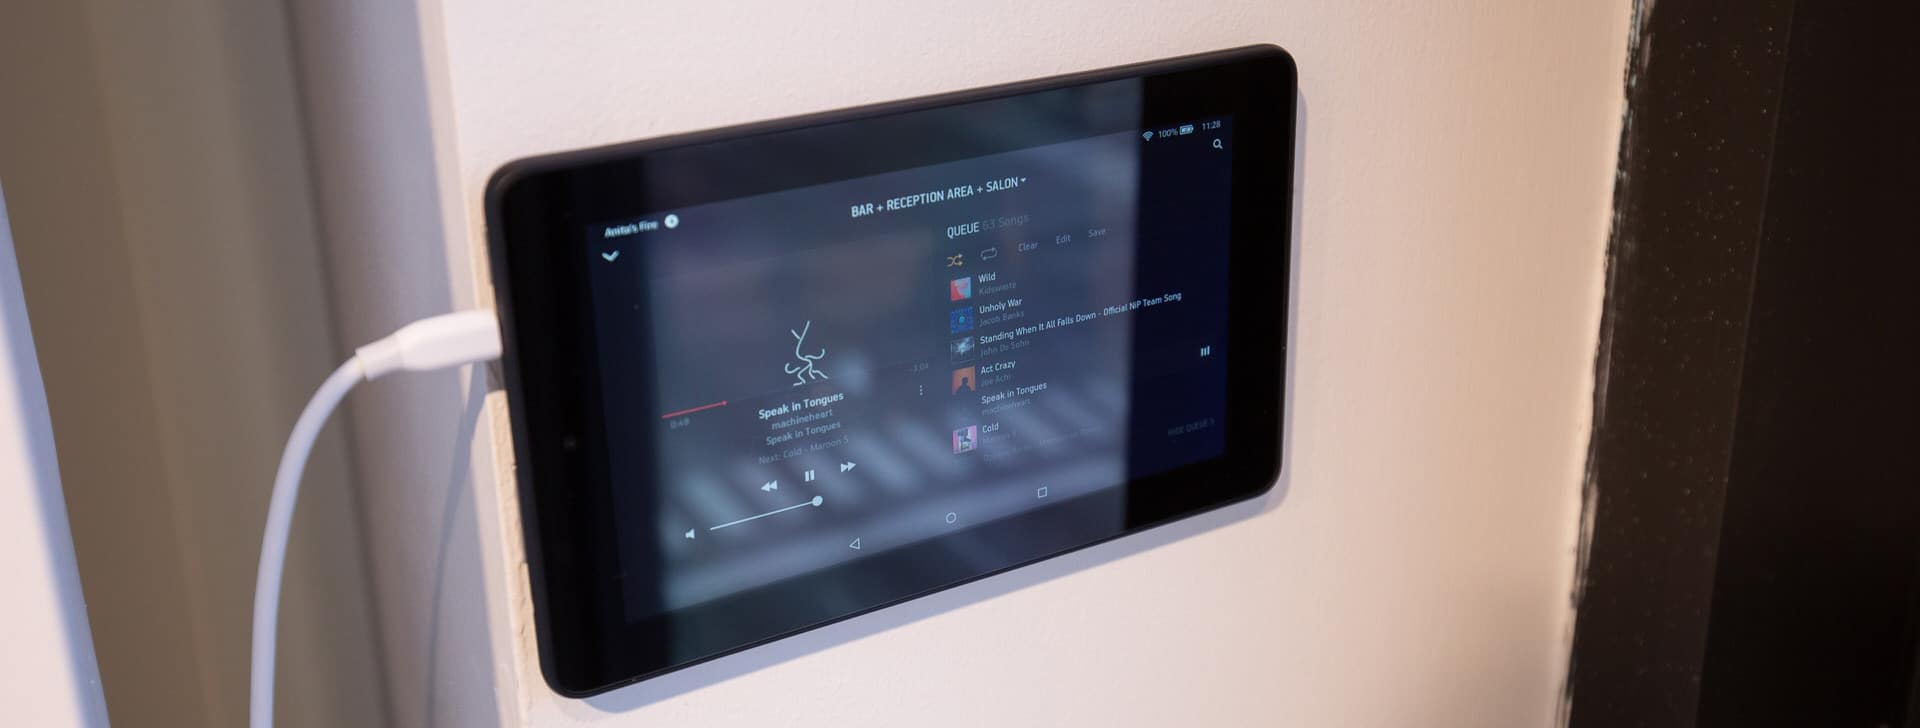 smart-salon-control-sonos-tablet